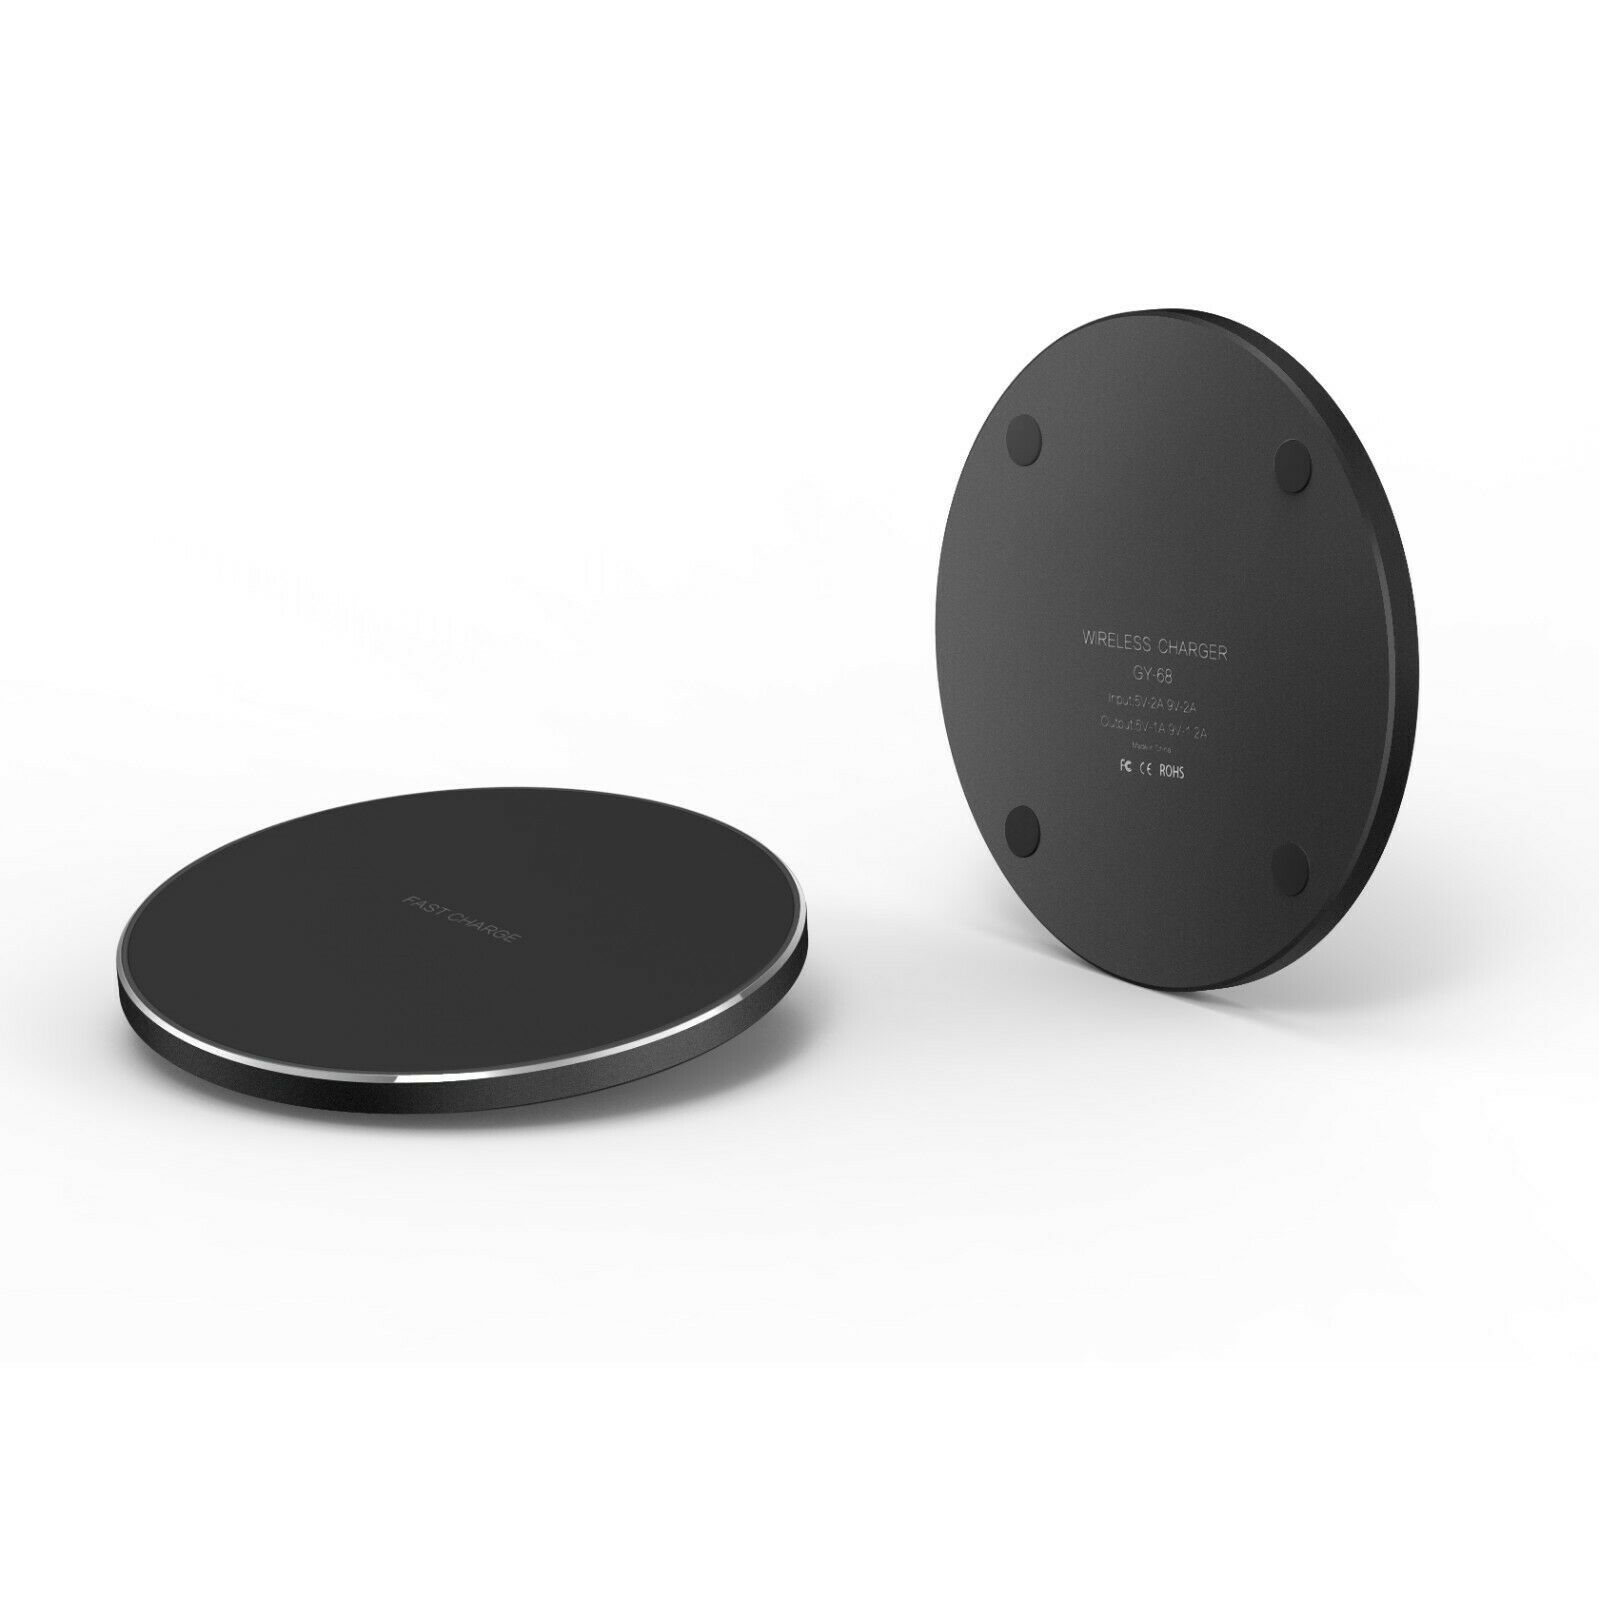 Primary image for Techno S Qi Wireless Charger Fast Charging Dock Pad for Apple, Samsung and more